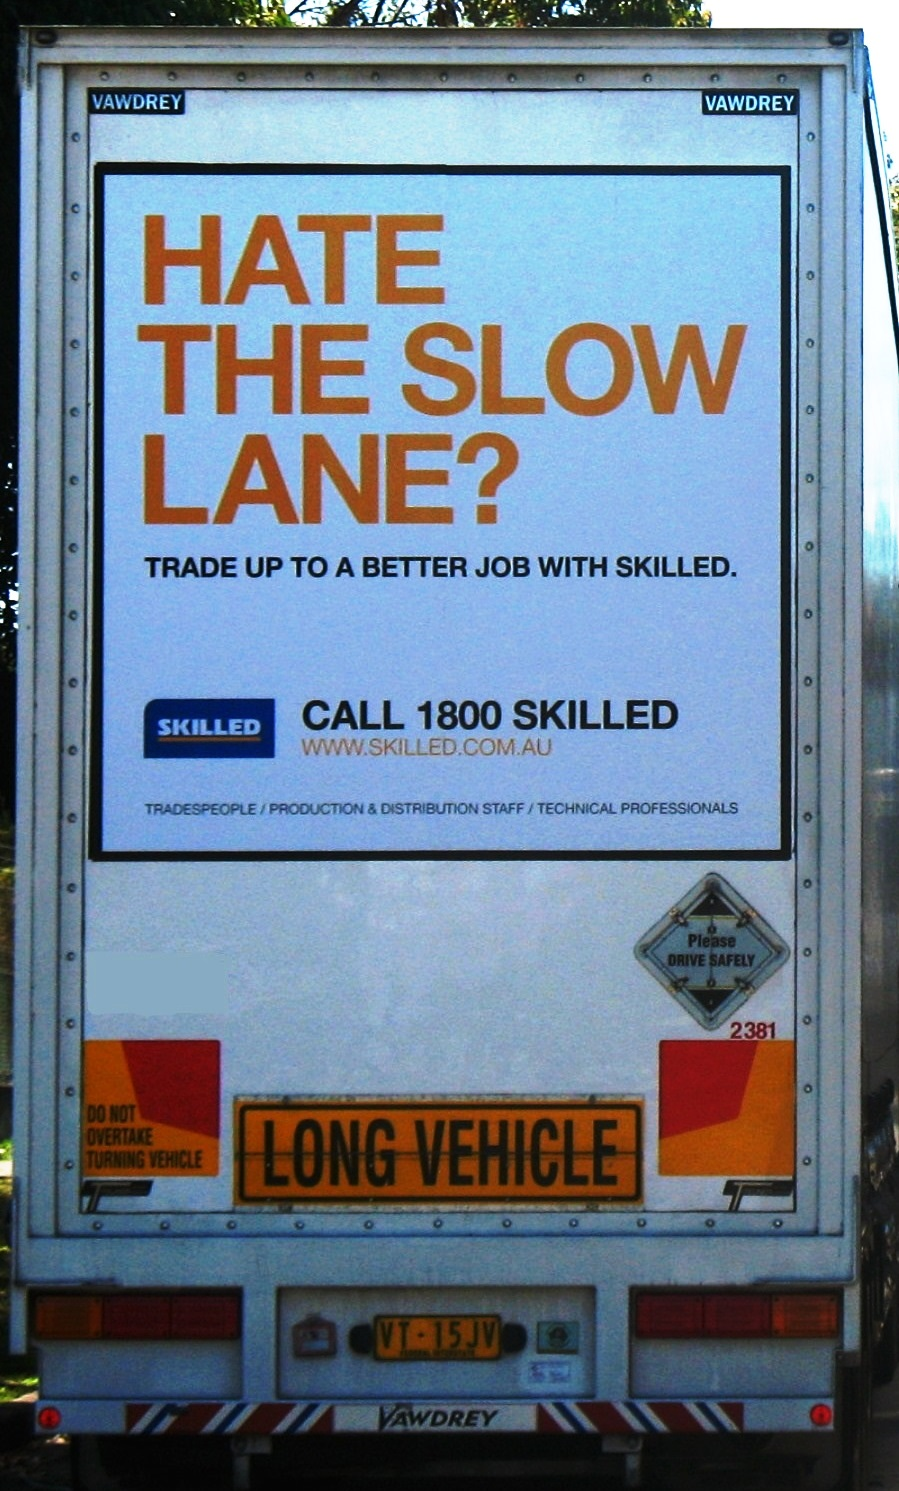 Truck advertising. TruckBack. Hate The Slow Lane? campaign. Trade up to a better job with skilled. Flatback B Double long vehicle First Fleet. Vawdrey.